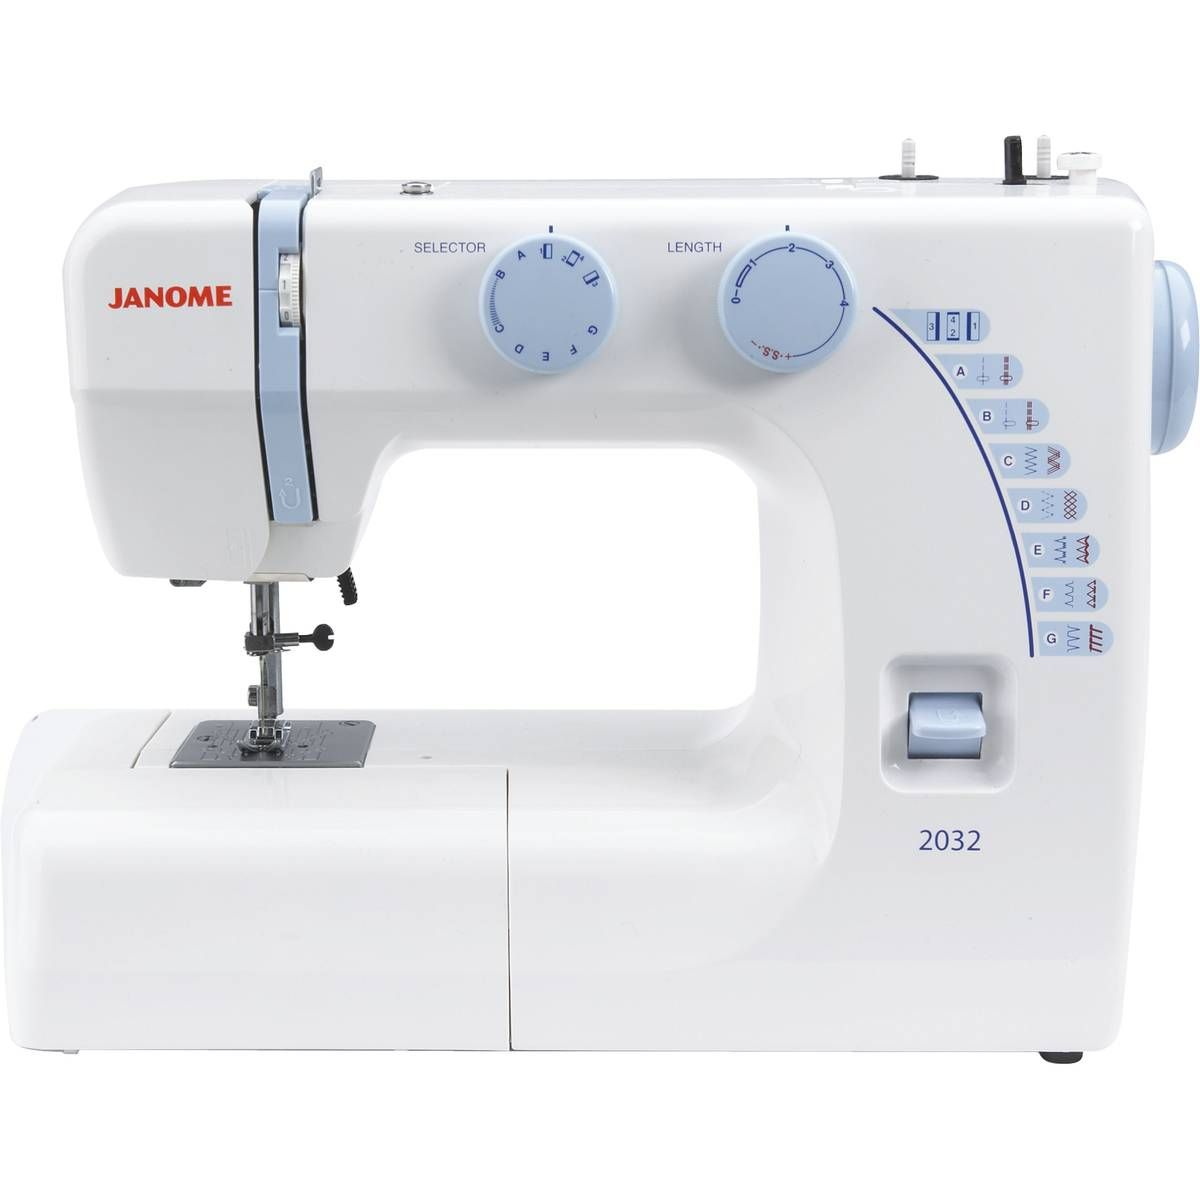 Sewing, Janome, Easy Sewing